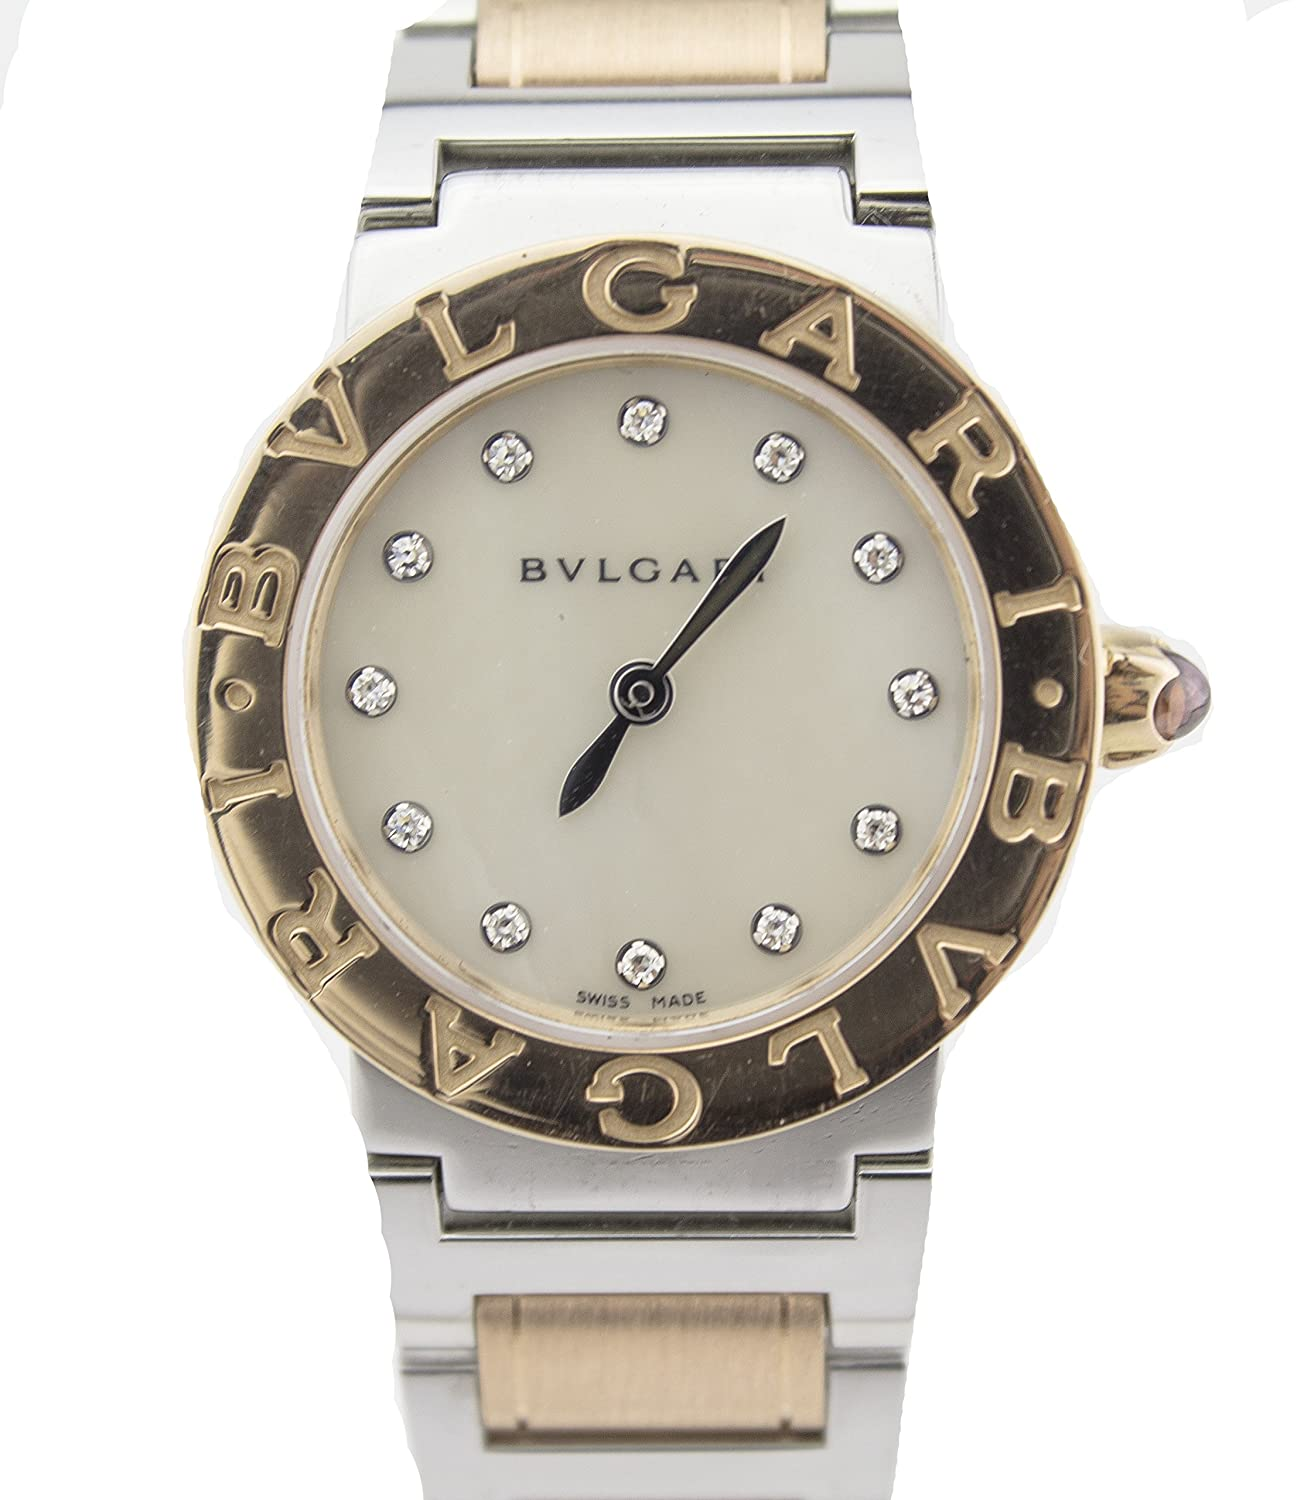 Amazon.com: Bvlgari 26MM Bvlgari Bvlgari 18K Rose Gold & Steel Watch BB33SLD (Certified Pre-Owned): Bvlgari: Watches